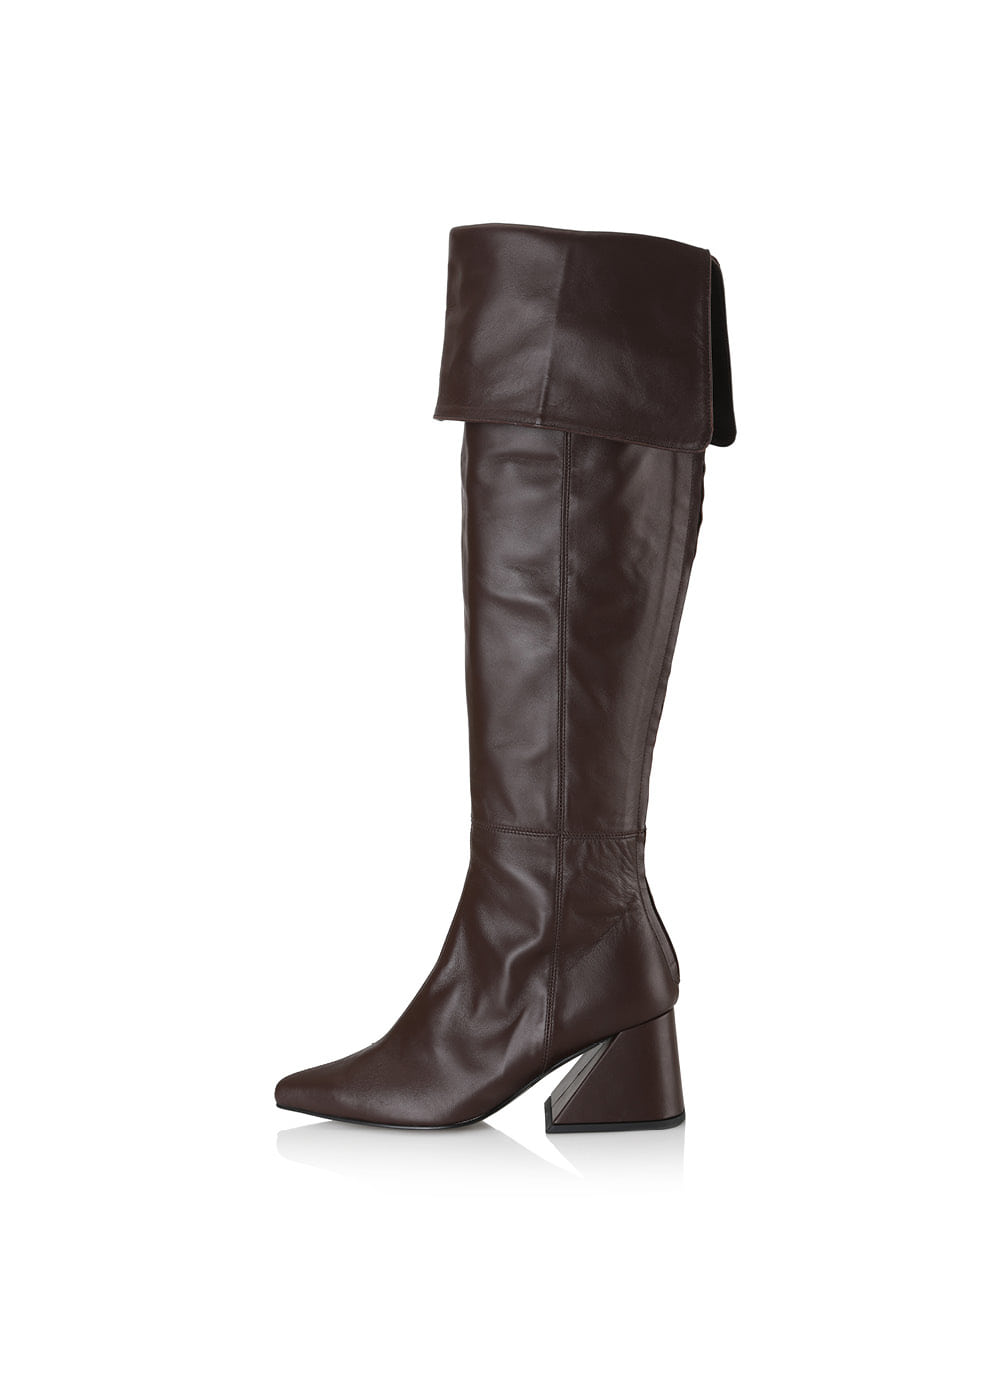 Melody over-the-knee boots / YY9A-B12 / 4 colors